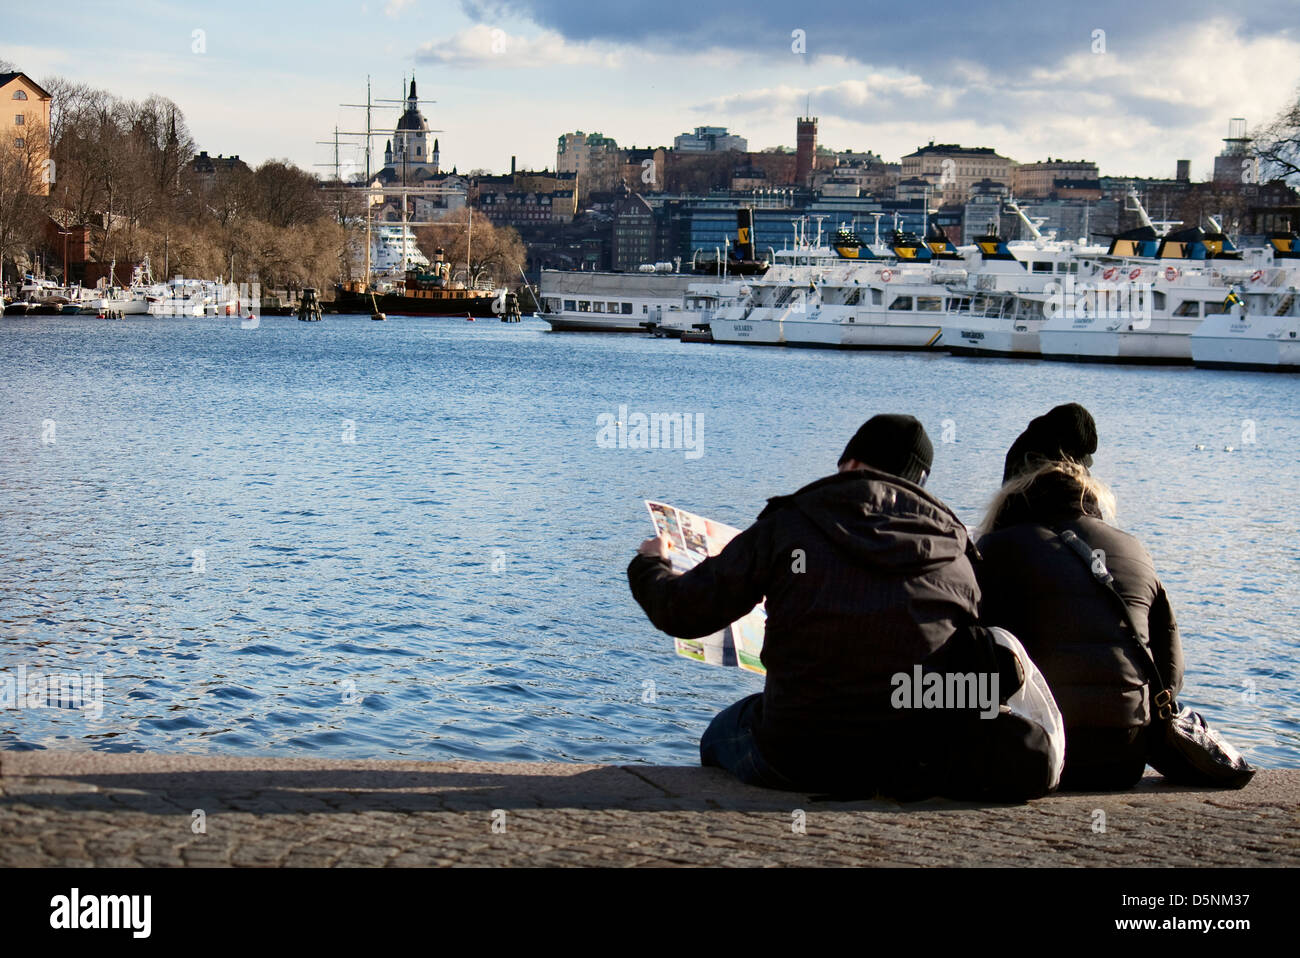 Scandinavia; Sweden; Swedish; Stockholm; Baltic; Sea; Ships; Ship; Harbour; People; Couple; Reading; Sitting; Relax; - Stock Image